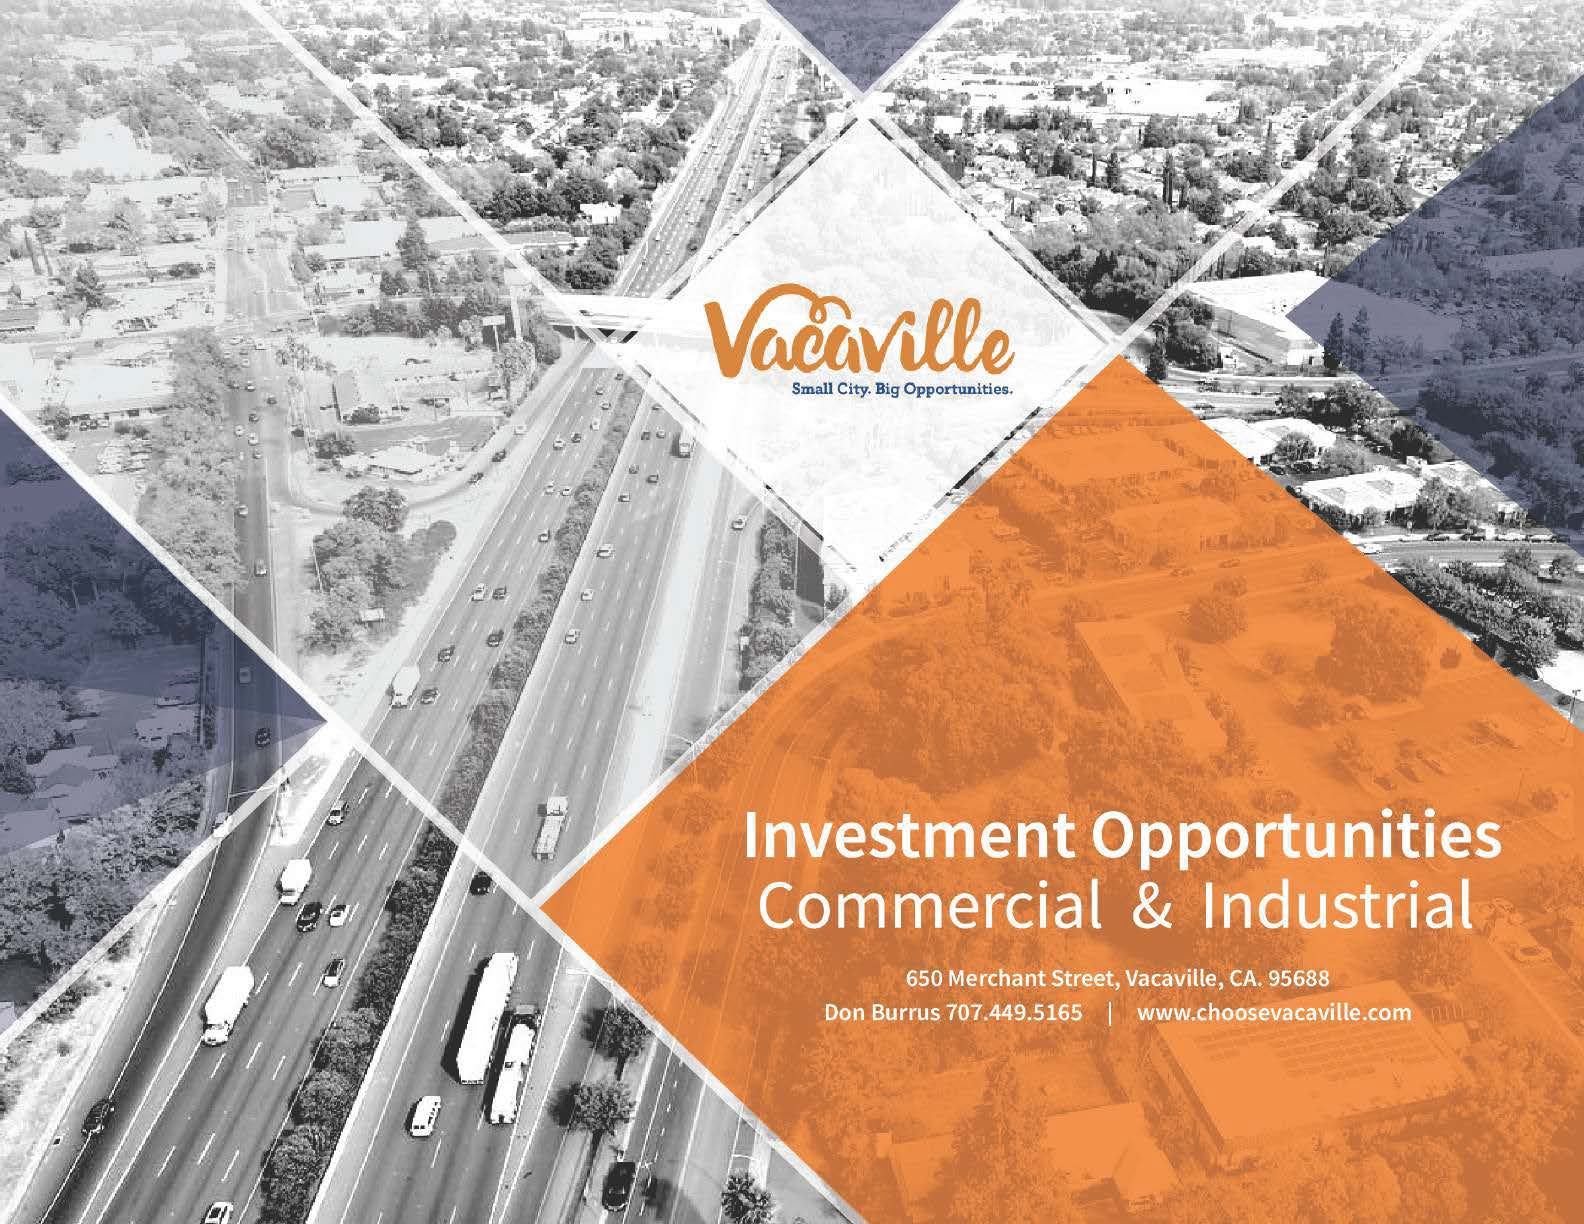 Cover of the brochure highlighting commercial and business investment opportunities in Vacaville